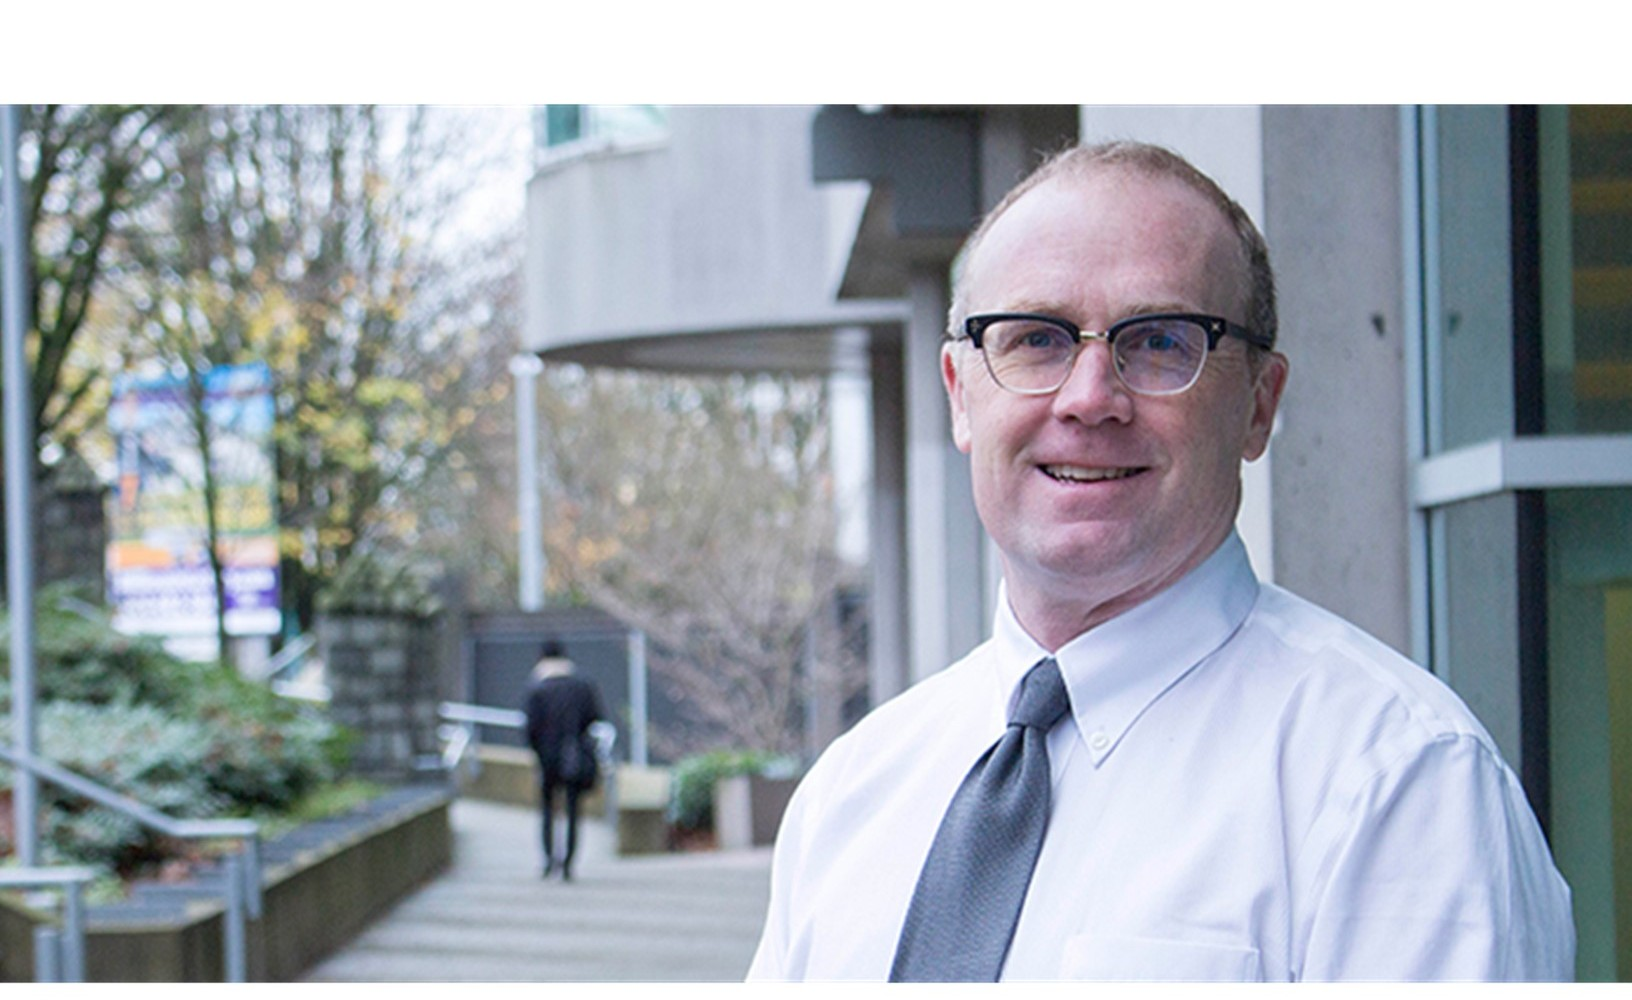 Dr. Bill Miller was featured on UBC Faculty of Medicine's MedNet Faculty and Staff Spotlight